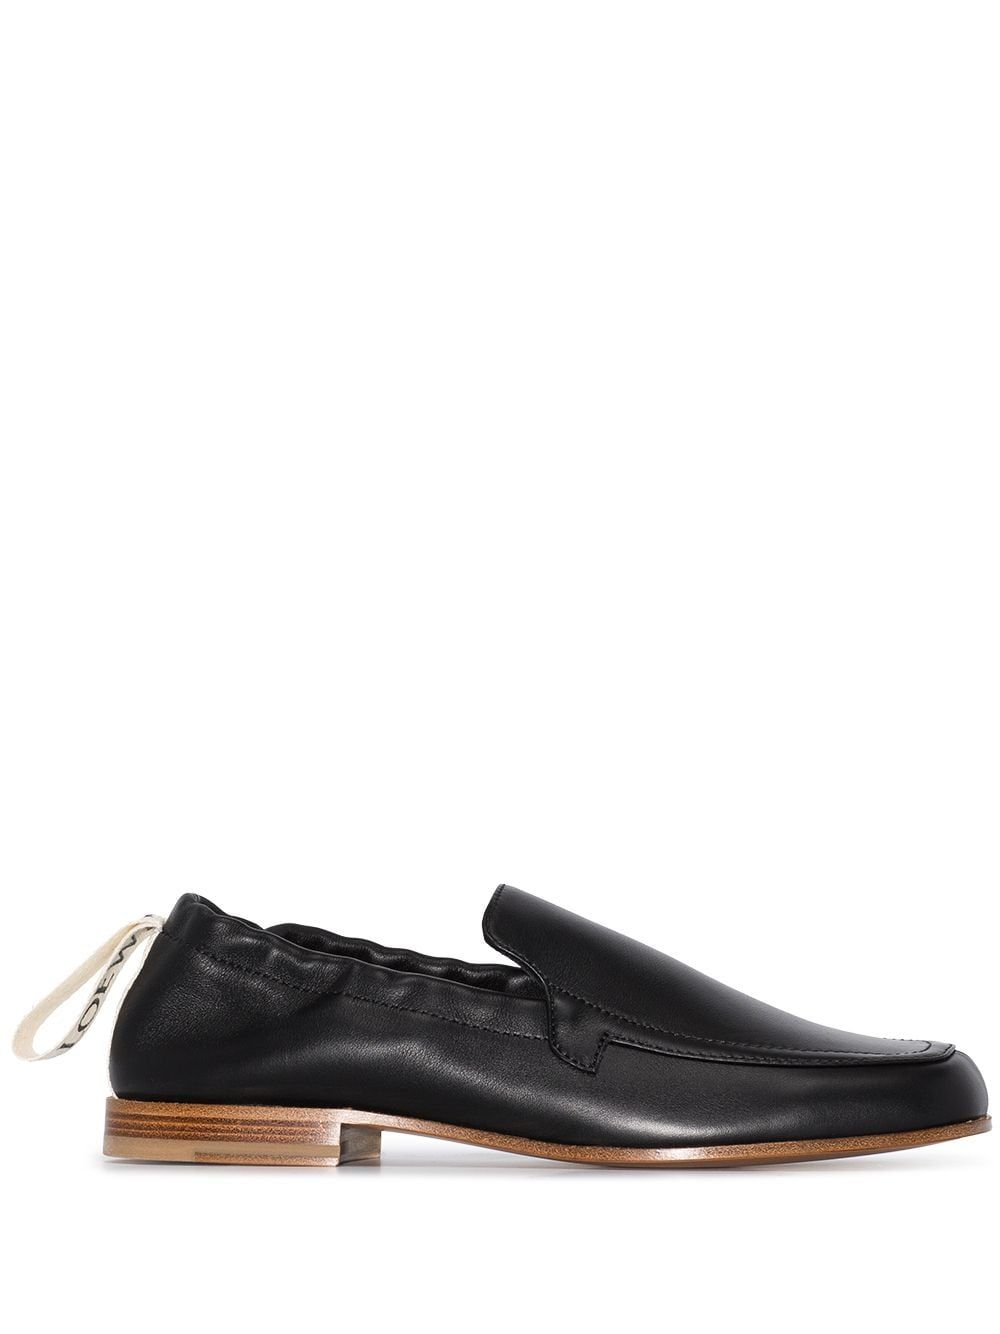 Loewe LOEWE WOMEN'S BLACK LEATHER LOAFERS